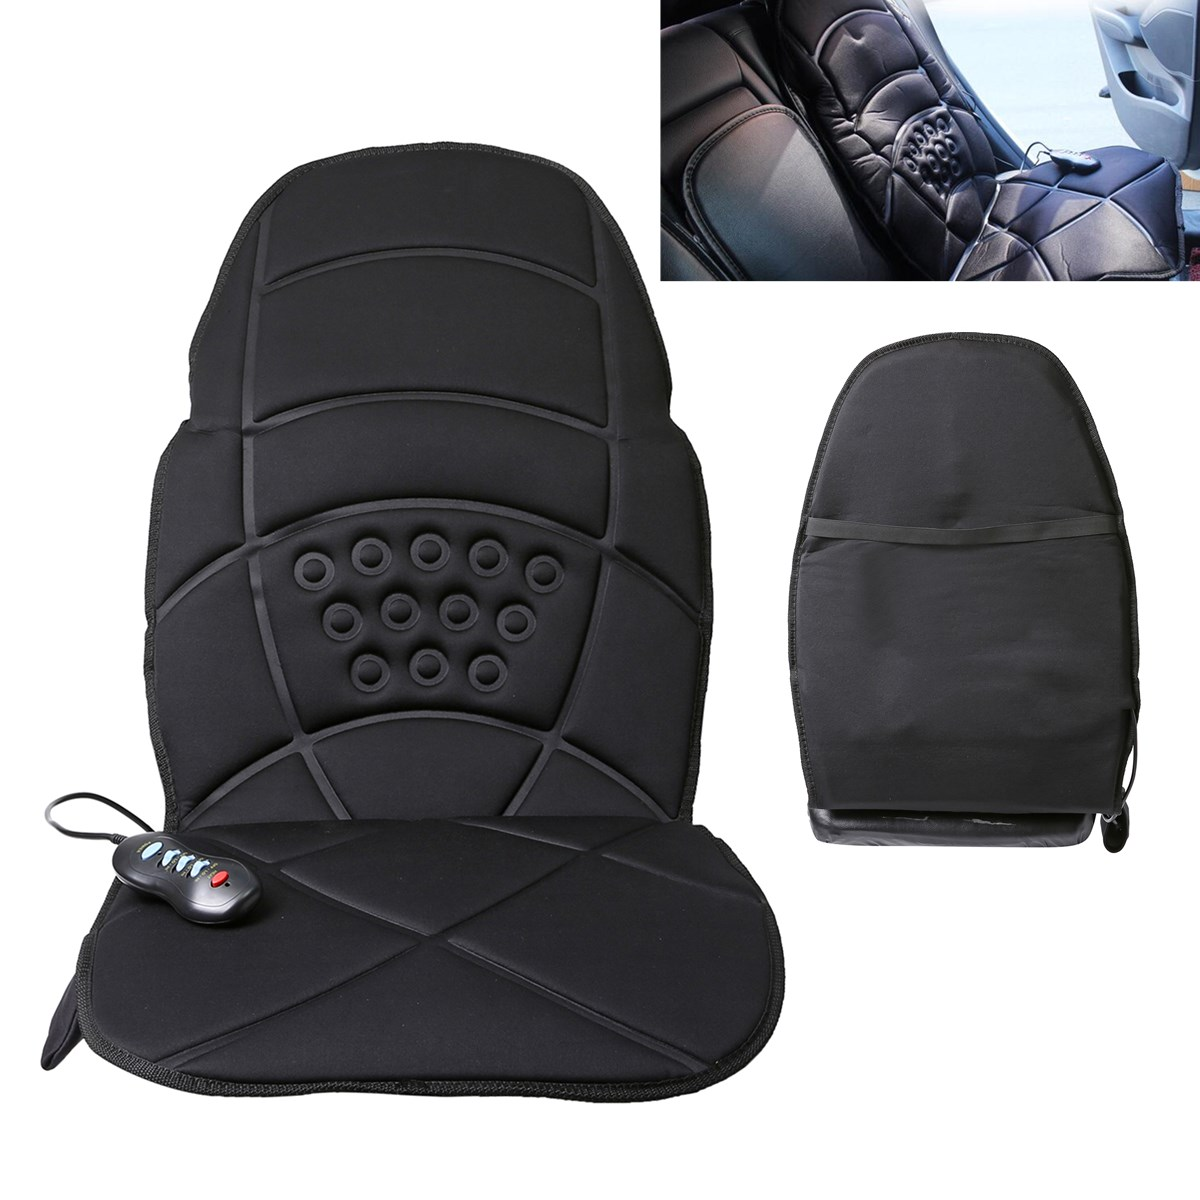 Heated Back Massage Chair Cushion Massager Car Seat Home Pad